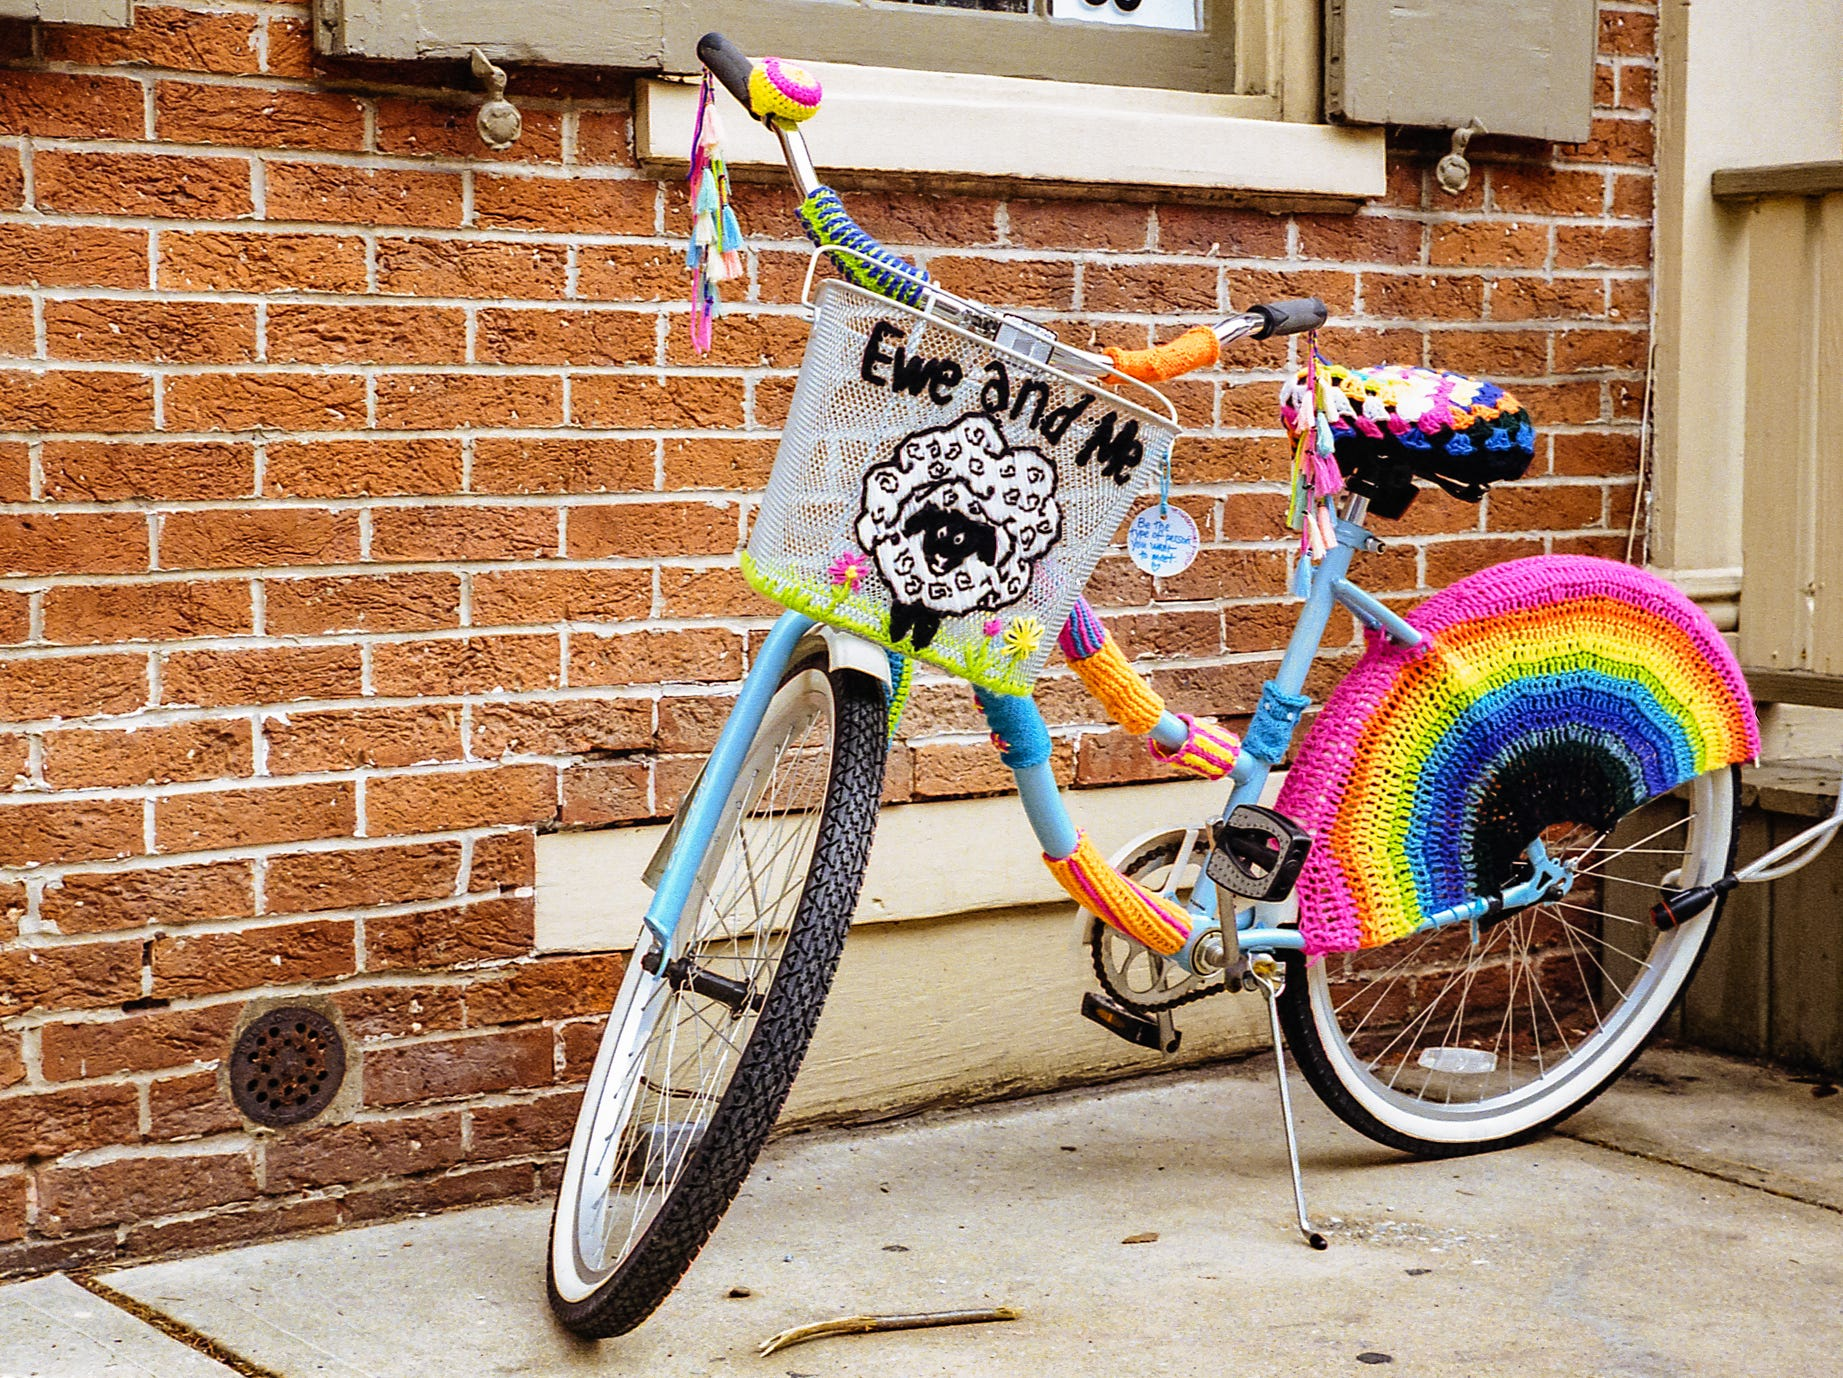 And lastly, he loves the entire process of shooting and developing pictures himself, which he does in the basement of his home.  This is a photo of a bike outside of Ewe and Me Yarn Shop. [Nikon F100] [Kodak Portra 400]